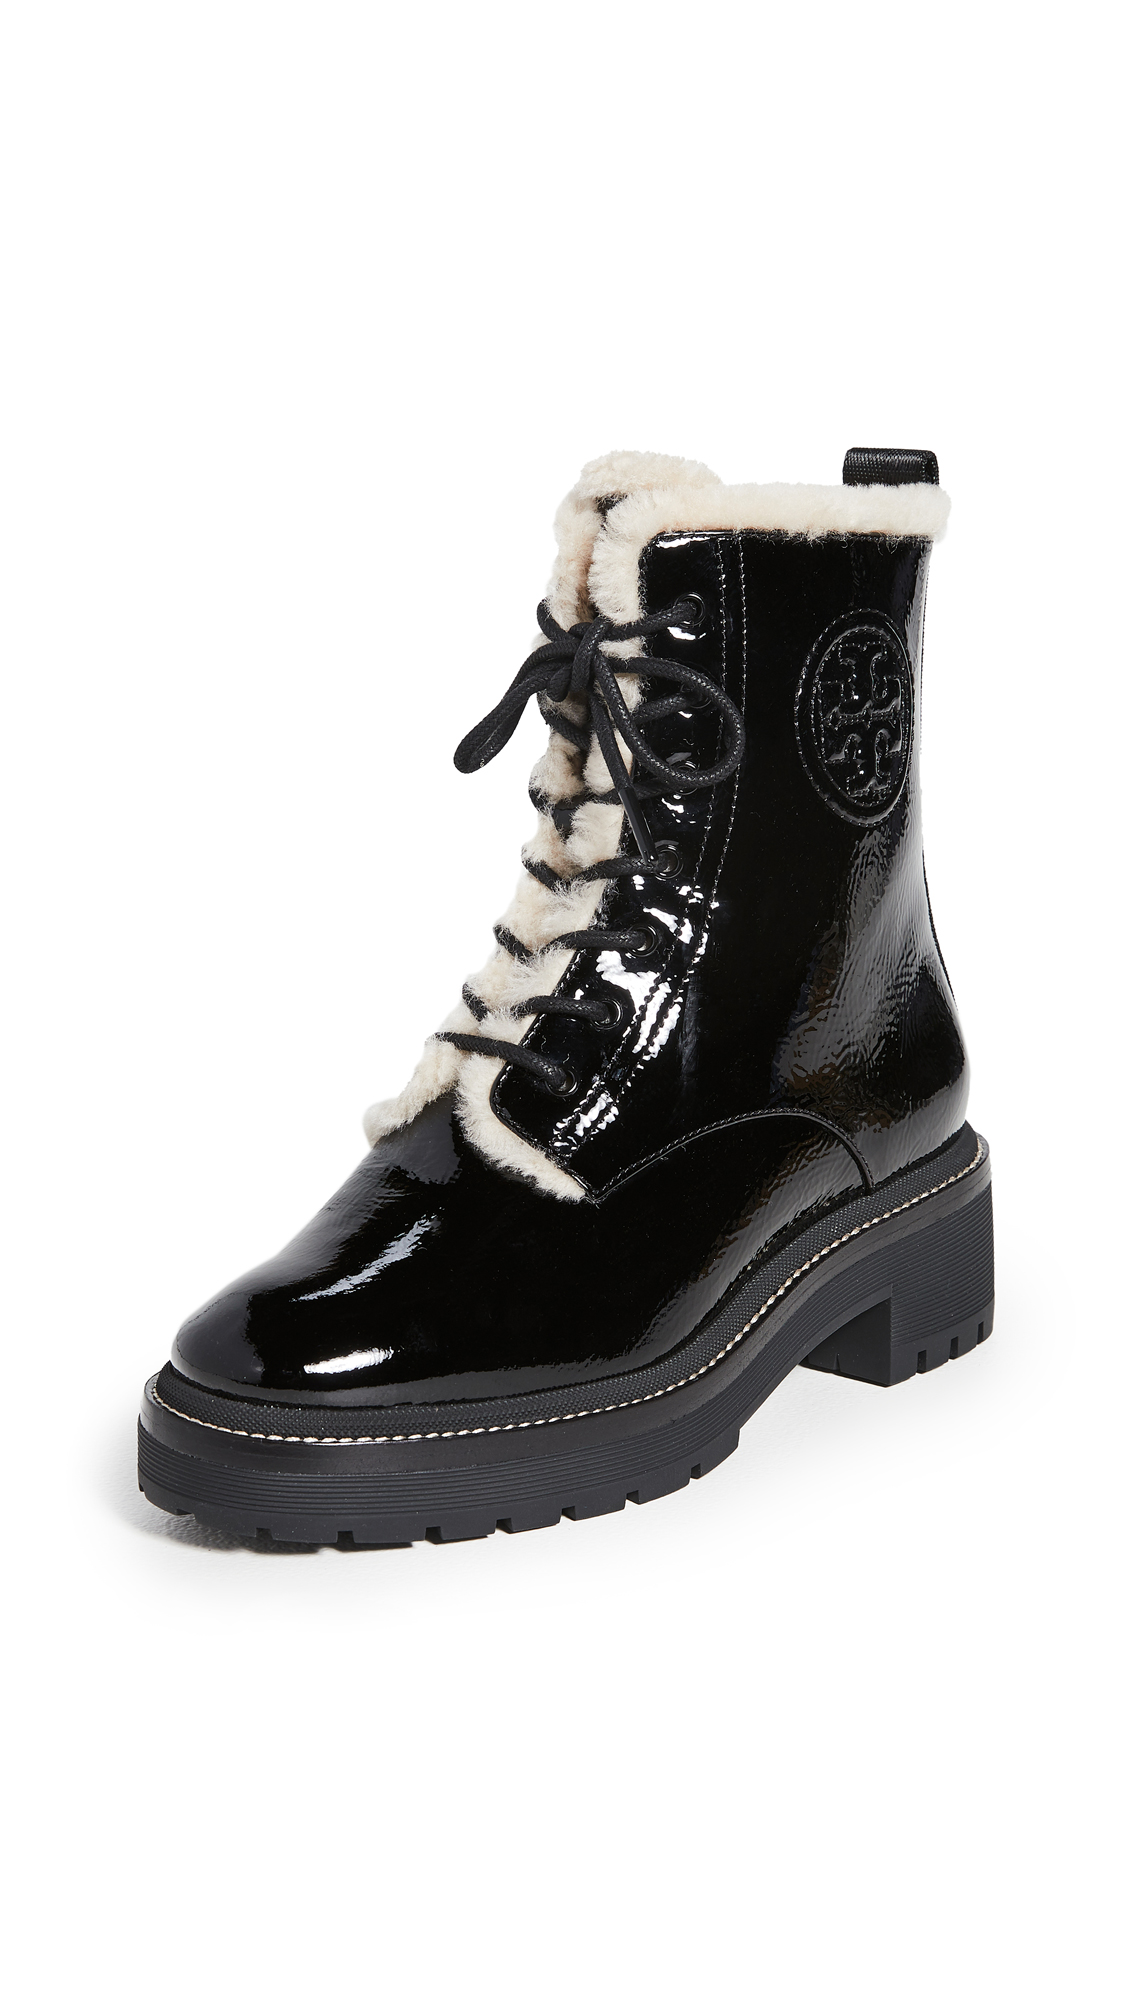 Tory Burch Miller 50mm Lug Sole Shearling Booties